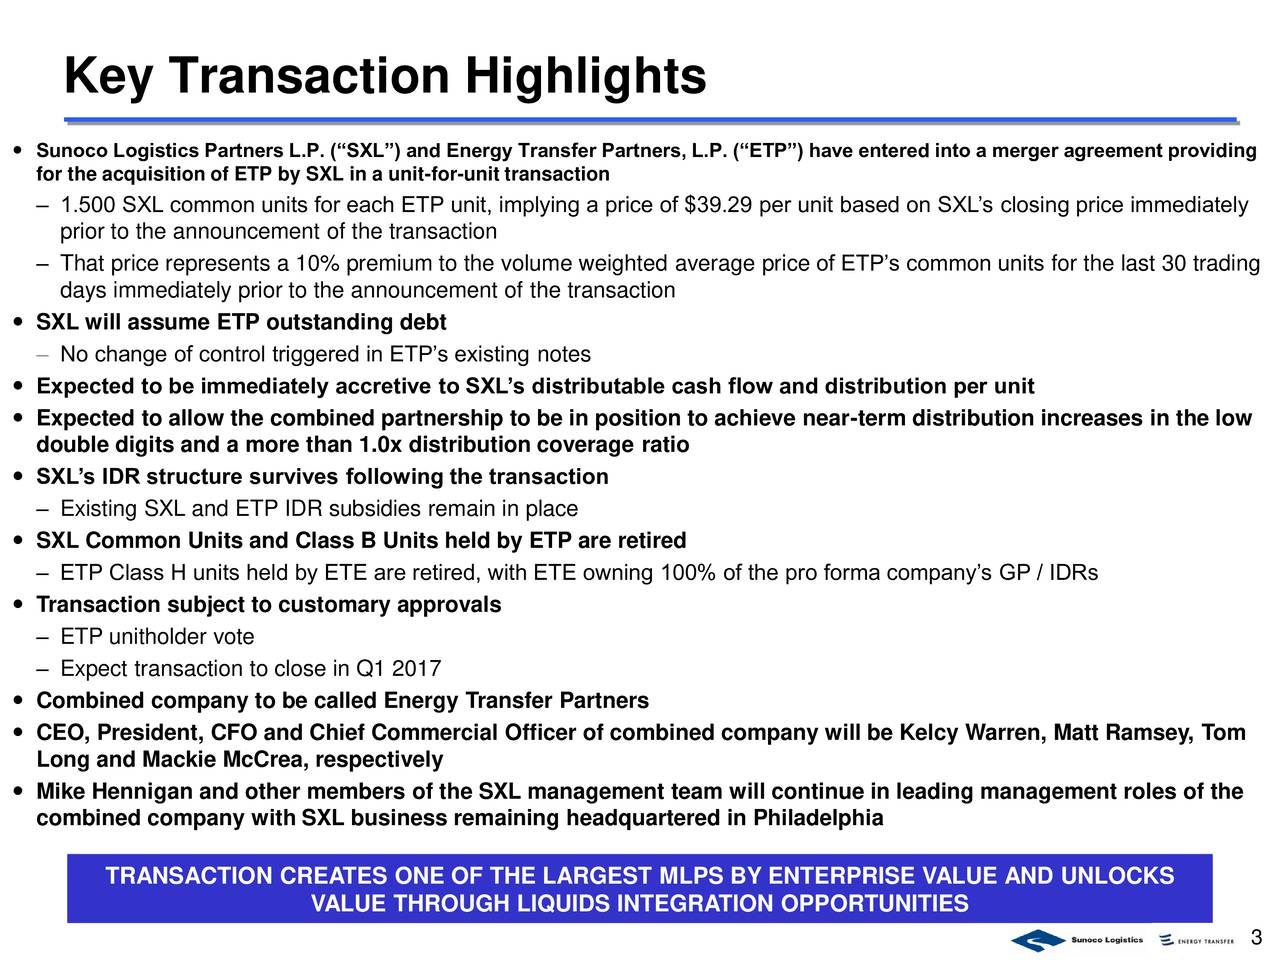 Sunoco Logistics Partners L.P. (SXL) and Energy Transfer Partners, L.P. (ETP) have entered into a merger agreement providing for the acquisition of ETP by SXL in a unit-for-unit transaction 1.500 SXL common units for each ETP unit, implying a price of $39.29 per unit based on SXLs closing price immediately prior to the announcement of the transaction That price represents a 10% premium to the volume weighted average price of ETPs common units for the last 30 trading days immediately prior to the announcement of the transaction SXL will assume ETP outstanding debt No change of control triggered in ETPs existing notes Expected to be immediately accretive to SXLs distributable cash flow and distribution per unit Expected to allow the combined partnership to be in position to achieve near-term distribution increases in the low double digits and a more than 1.0x distribution coverage ratio SXLs IDR structure survives following the transaction Existing SXL and ETP IDR subsidies remain in place SXL Common Units and Class B Units held by ETP are retired ETP Class H units held by ETE are retired, with ETE owning 100% of the pro forma companys GP / IDRs Transaction subject to customary approvals ETP unitholder vote Expect transaction to close in Q1 2017 Combined company to be called Energy Transfer Partners CEO, President, CFO and Chief Commercial Officer of combined company will be Kelcy Warren, Matt Ramsey, Tom Long and Mackie McCrea, respectively Mike Hennigan and other members of the SXL management team will continue in leading management roles of the combined company with SXL business remaining headquartered in Philadelphia TRANSACTION CREATES ONE OF THE LARGEST MLPS BY ENTERPRISE VALUE AND UNLOCKS VALUE THROUGH LIQUIDS INTEGRATION OPPORTUNITIES 3